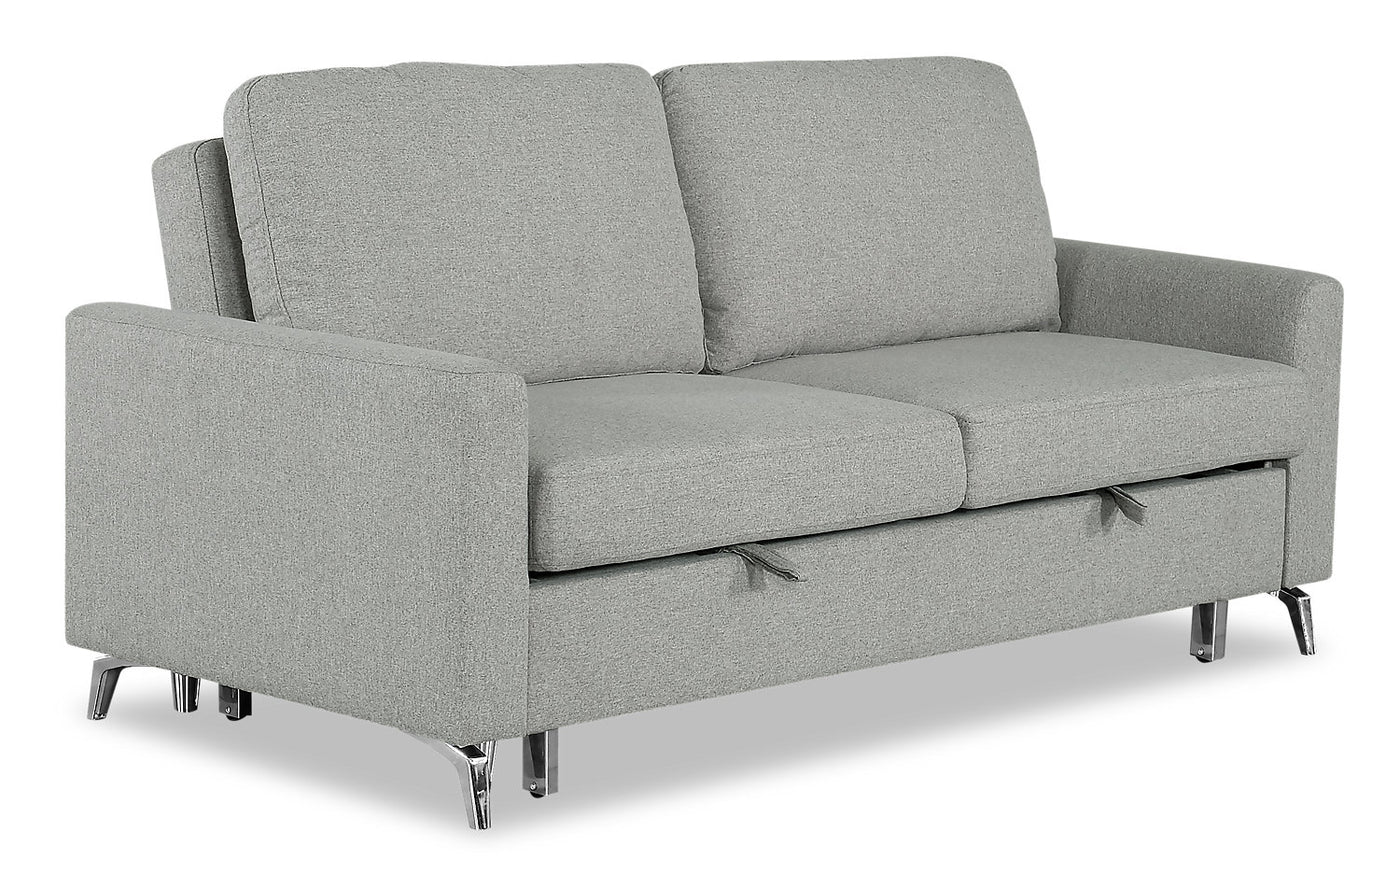 Wilson Linen-Look Fabric Sleeper Sofa - Solis Grey